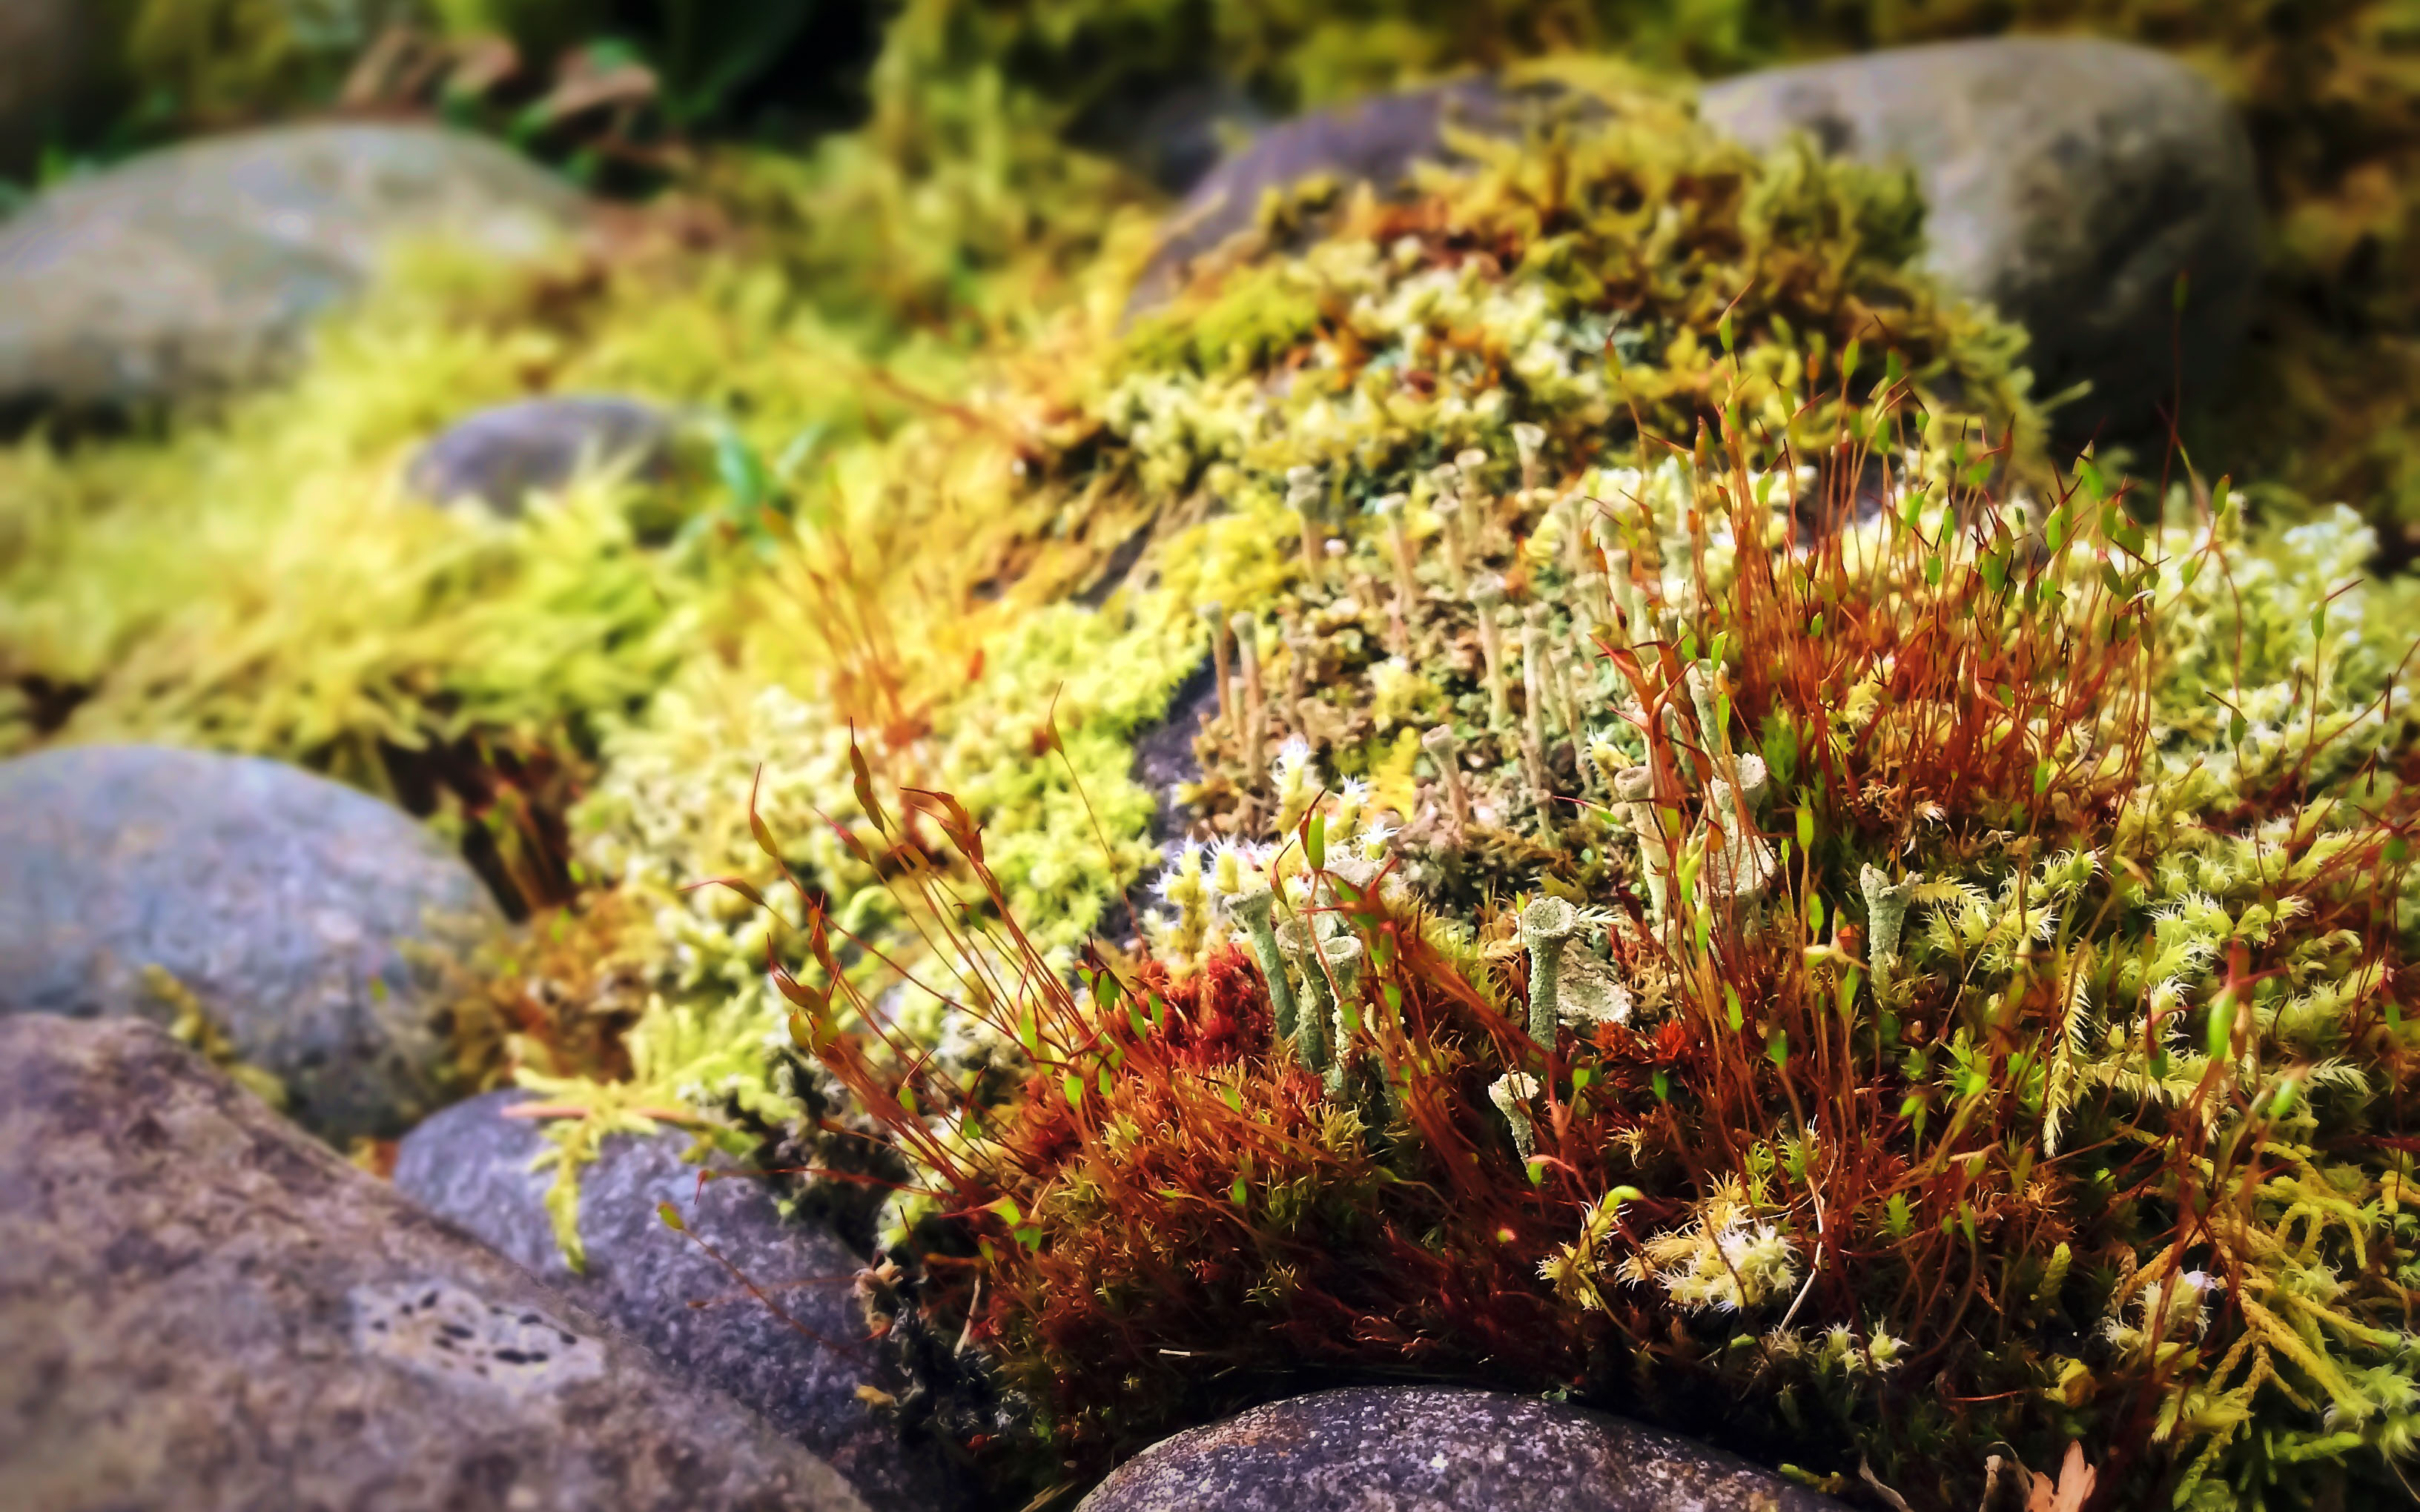 Moss with sporophytes and cup lichens among rocks photo